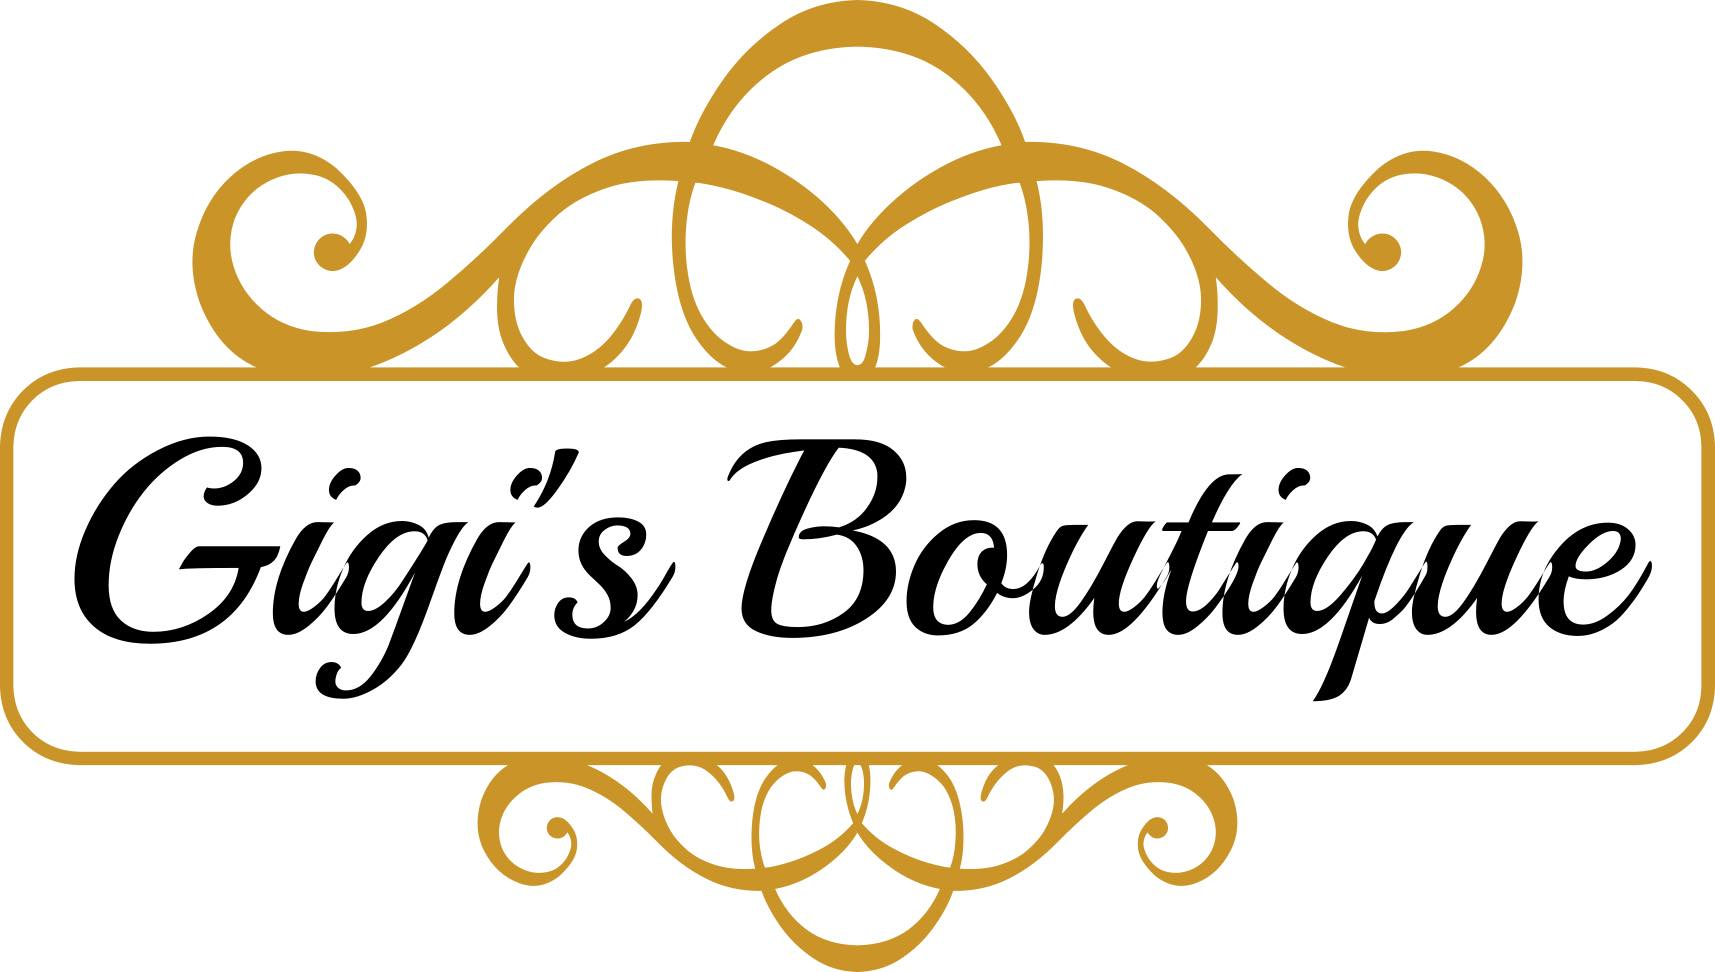 Gigi's Boutique and Gift Shop in Richmond Hill GA